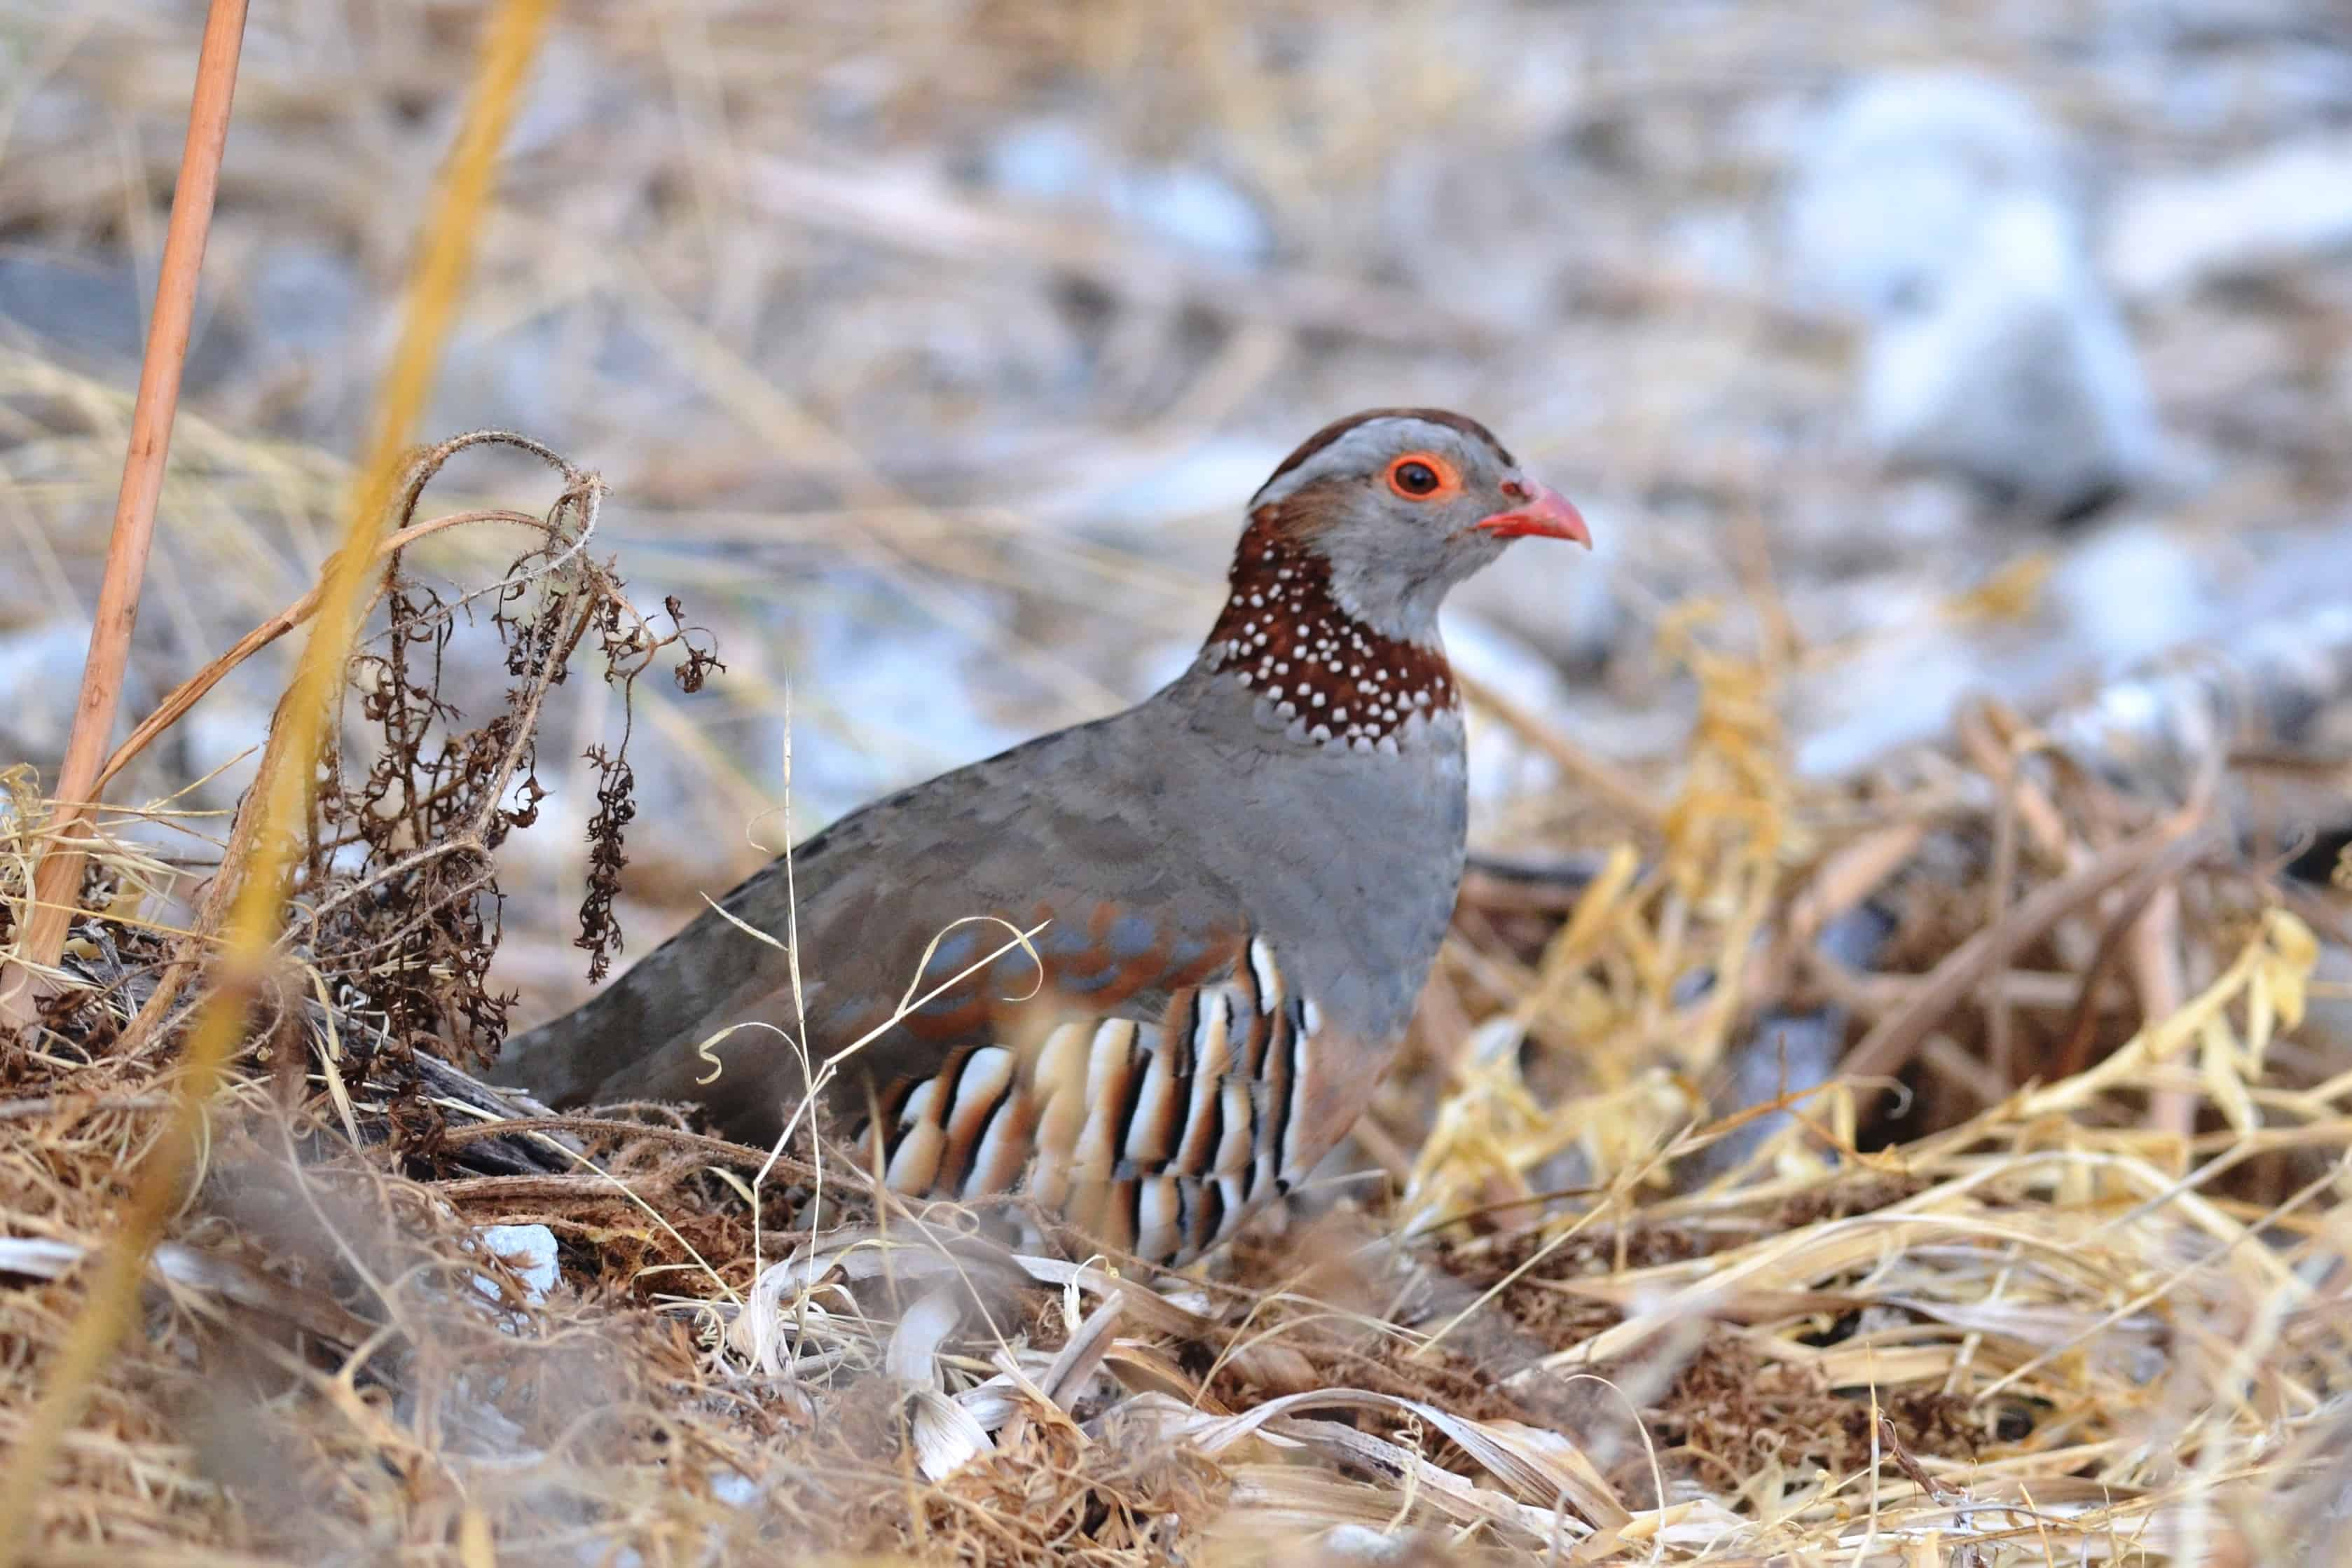 Barbary partridge adult in the wild; Copyright: Andrew Dobson